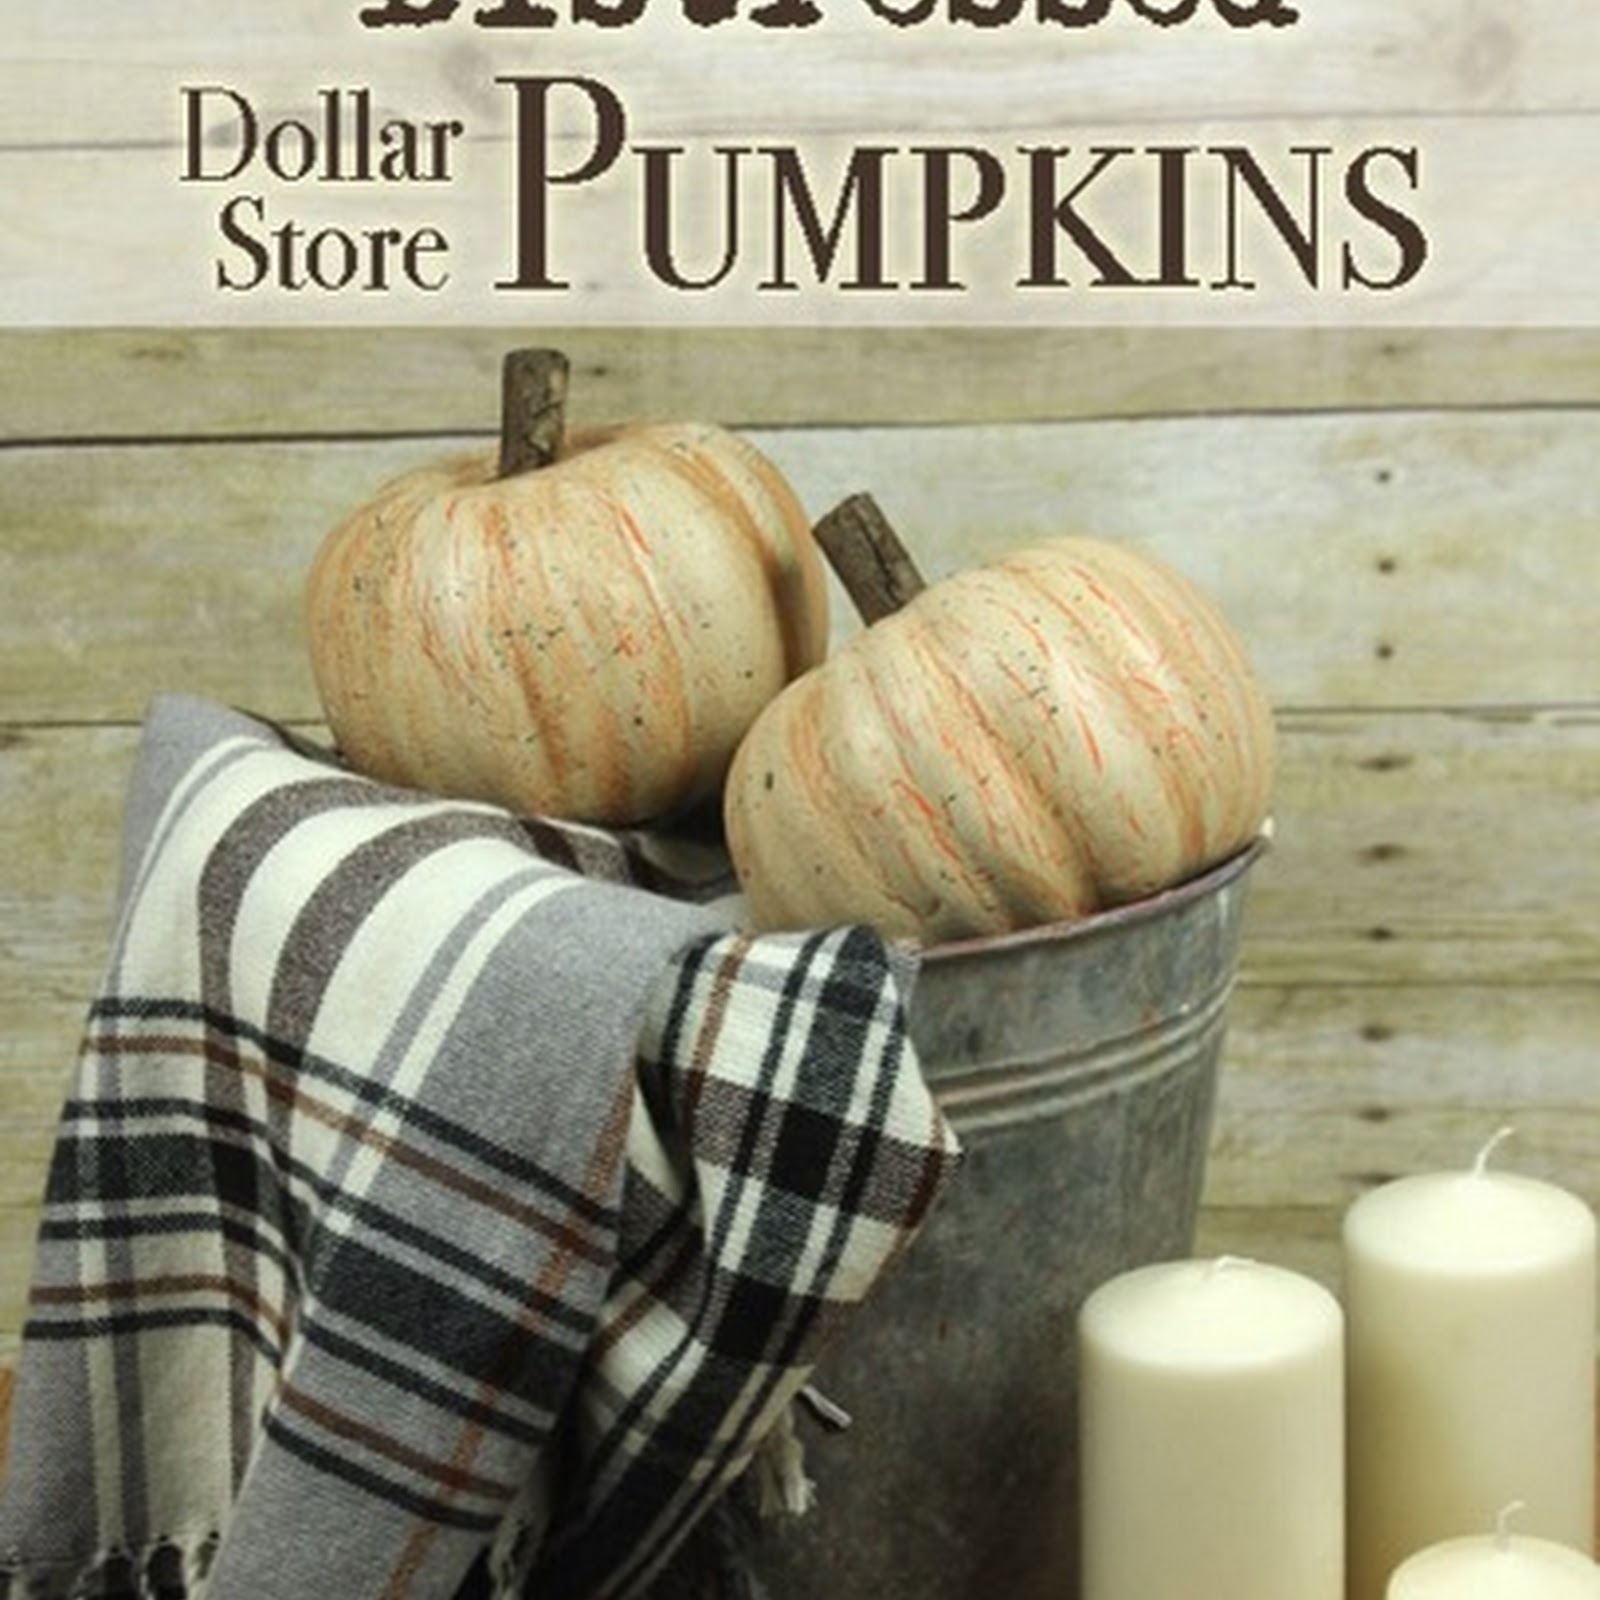 How to store pumpkins - What S Hot Right Now Distressed Dollar Store Pumpkins